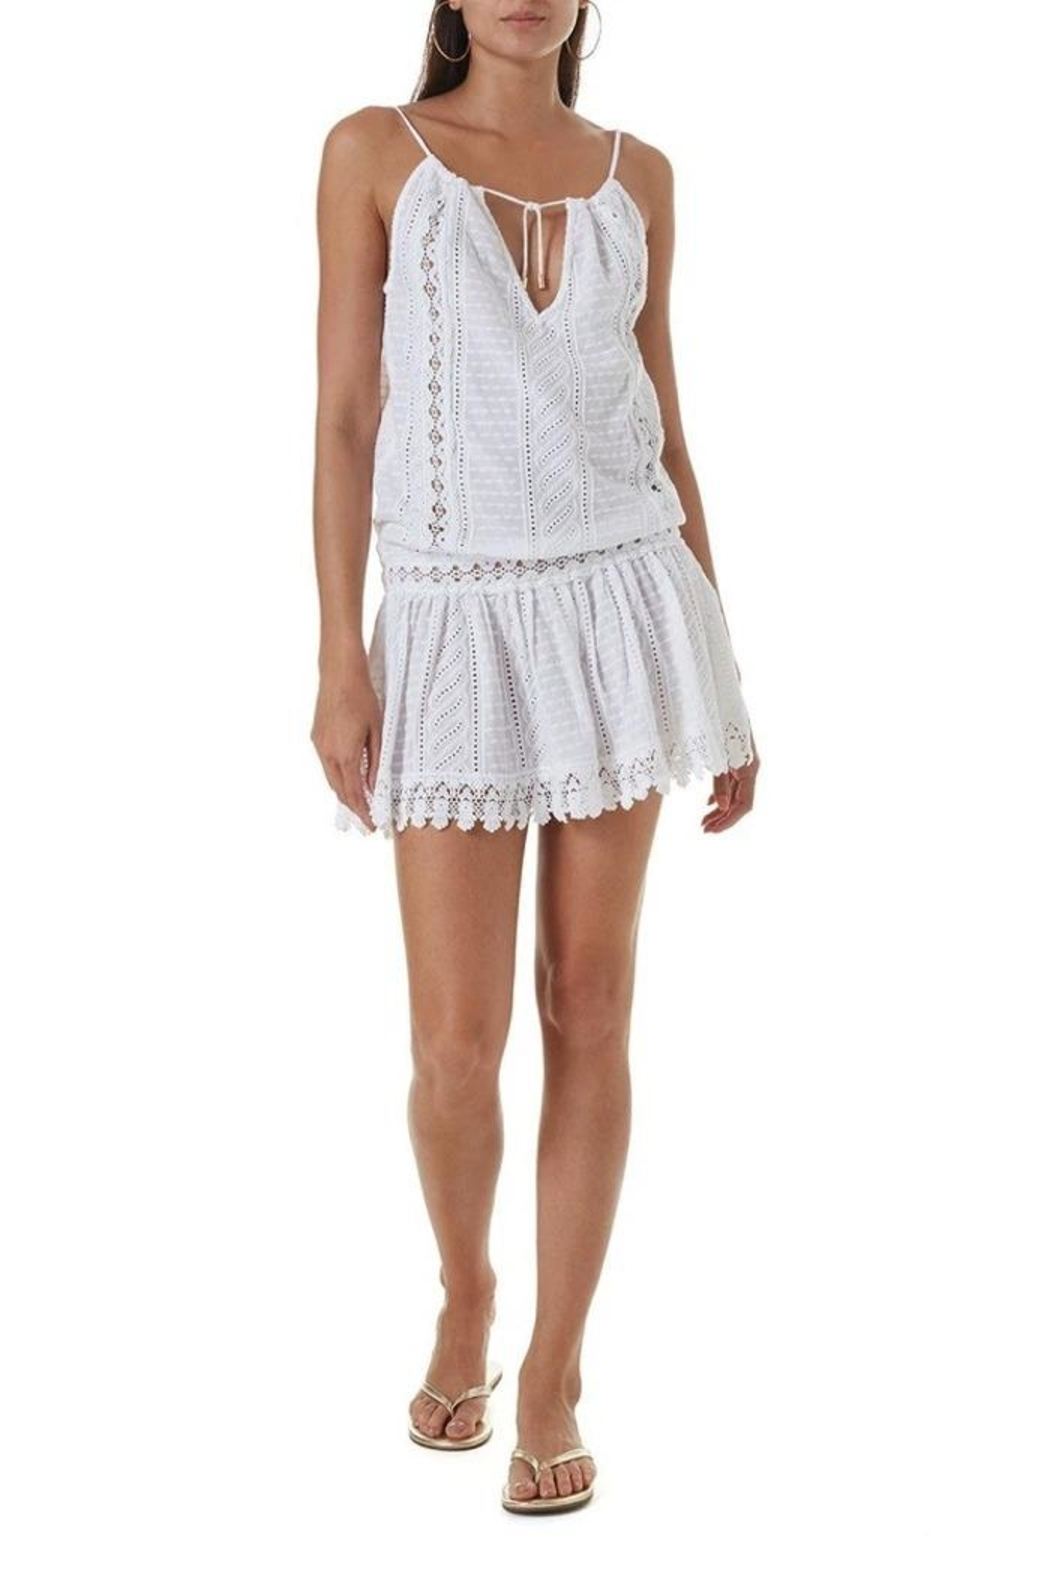 Melissa Odabash Chelsea Short Dress - Front Cropped Image